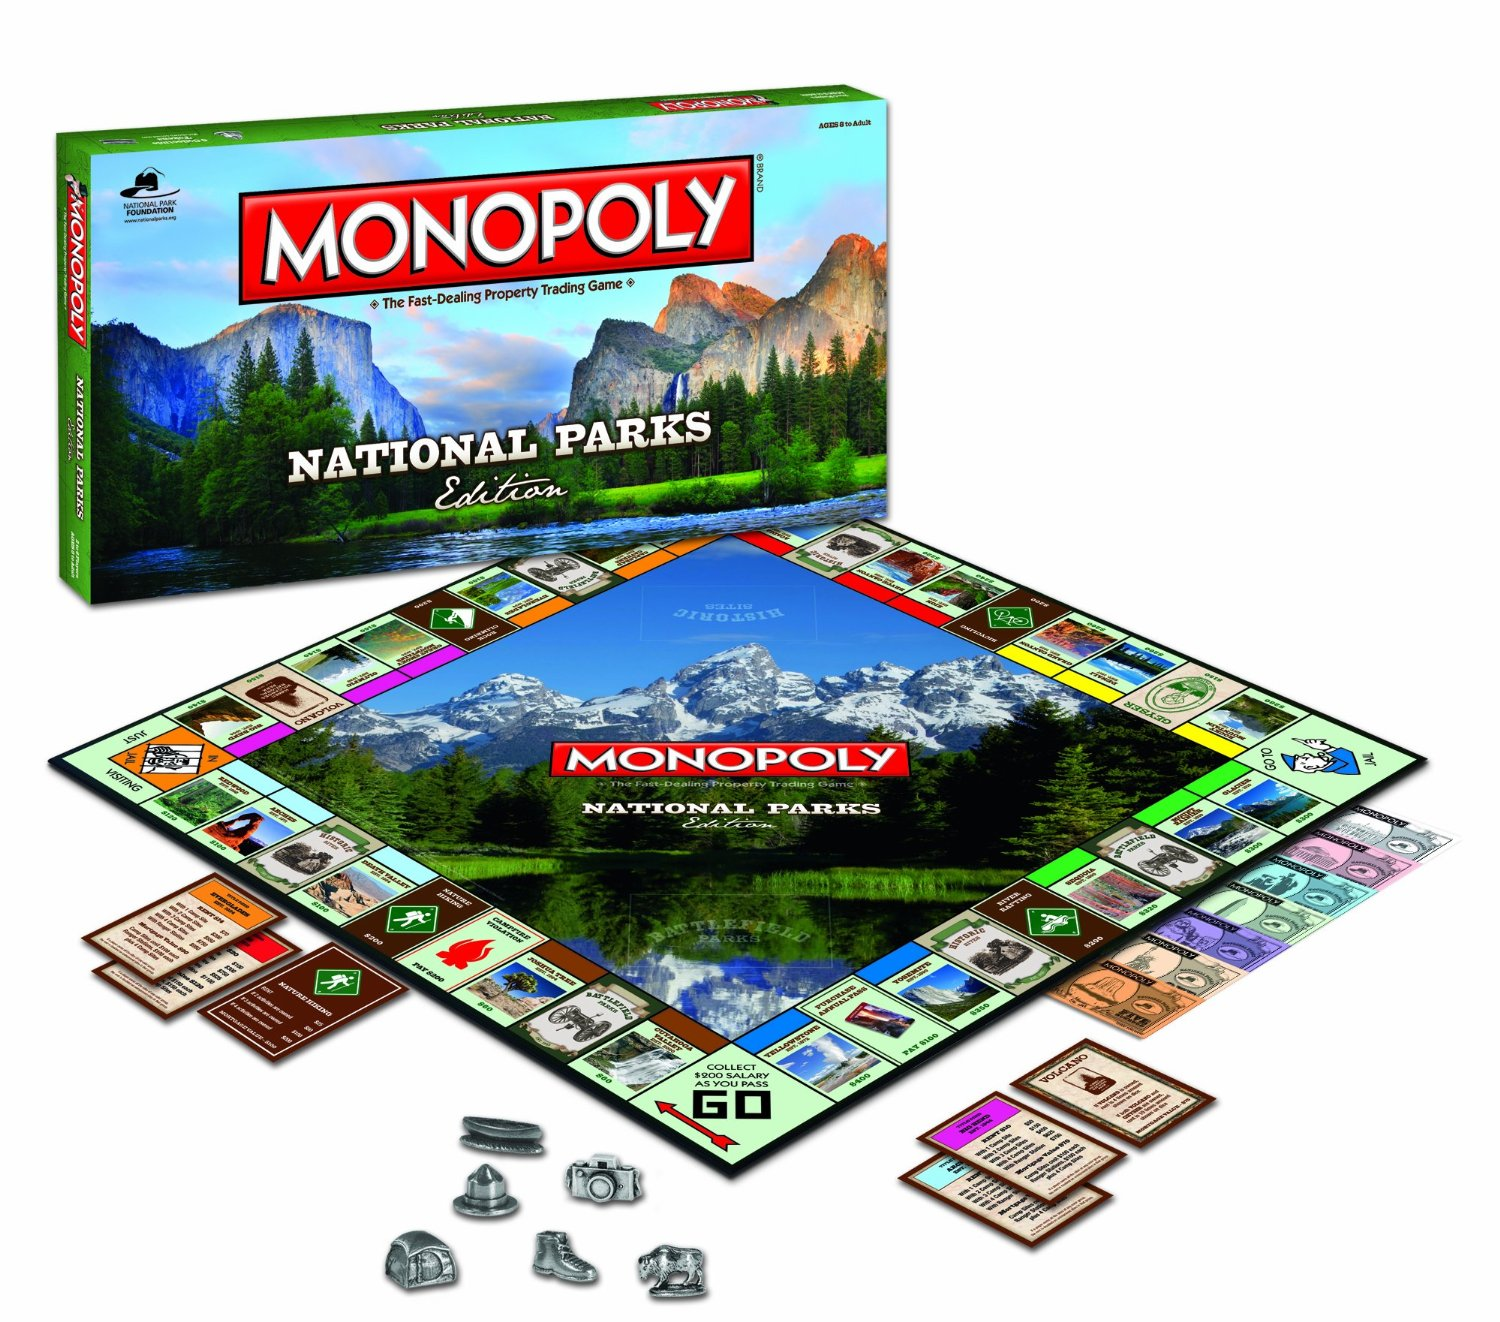 MONOPOLY: National Parks Edition. Learn about our beautiful National Parks on Family Game Night!